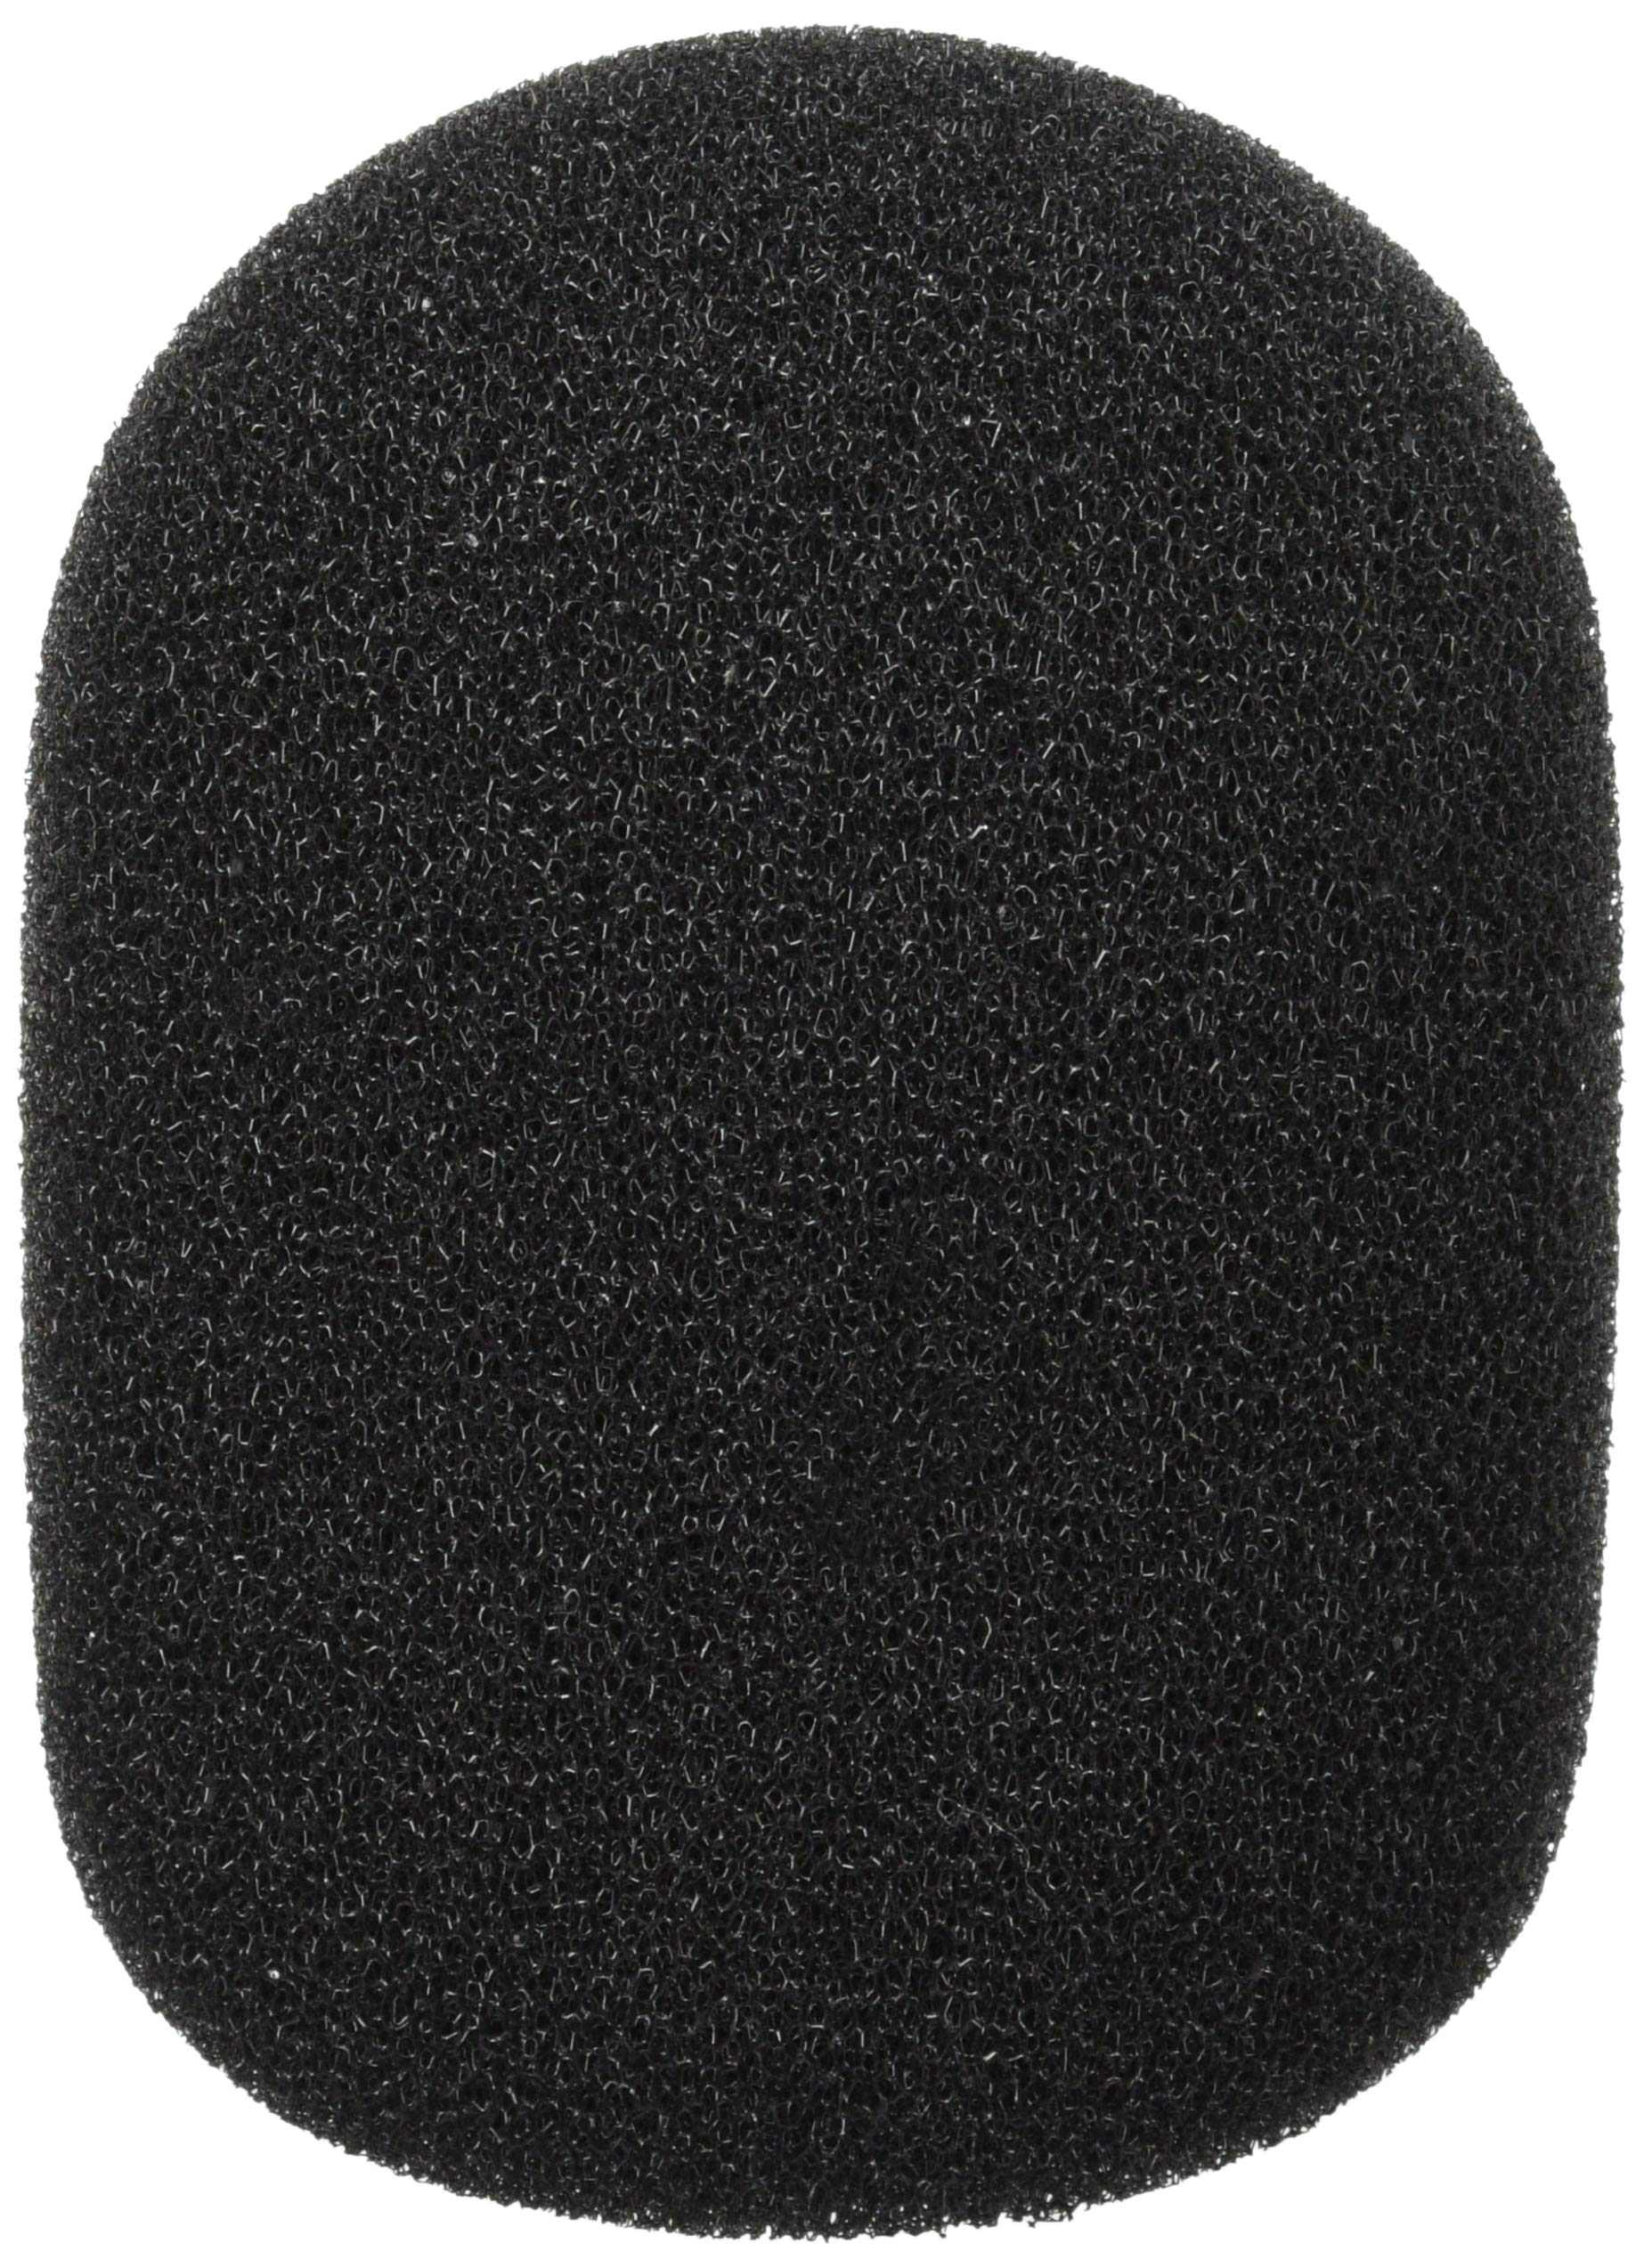 Rode WS2 Microphone Pop Filter/Wind Shield for NT1-A, NT2-A, NT1000, NT2000, NTK, K2 and Broadcaster Microphones by Rode